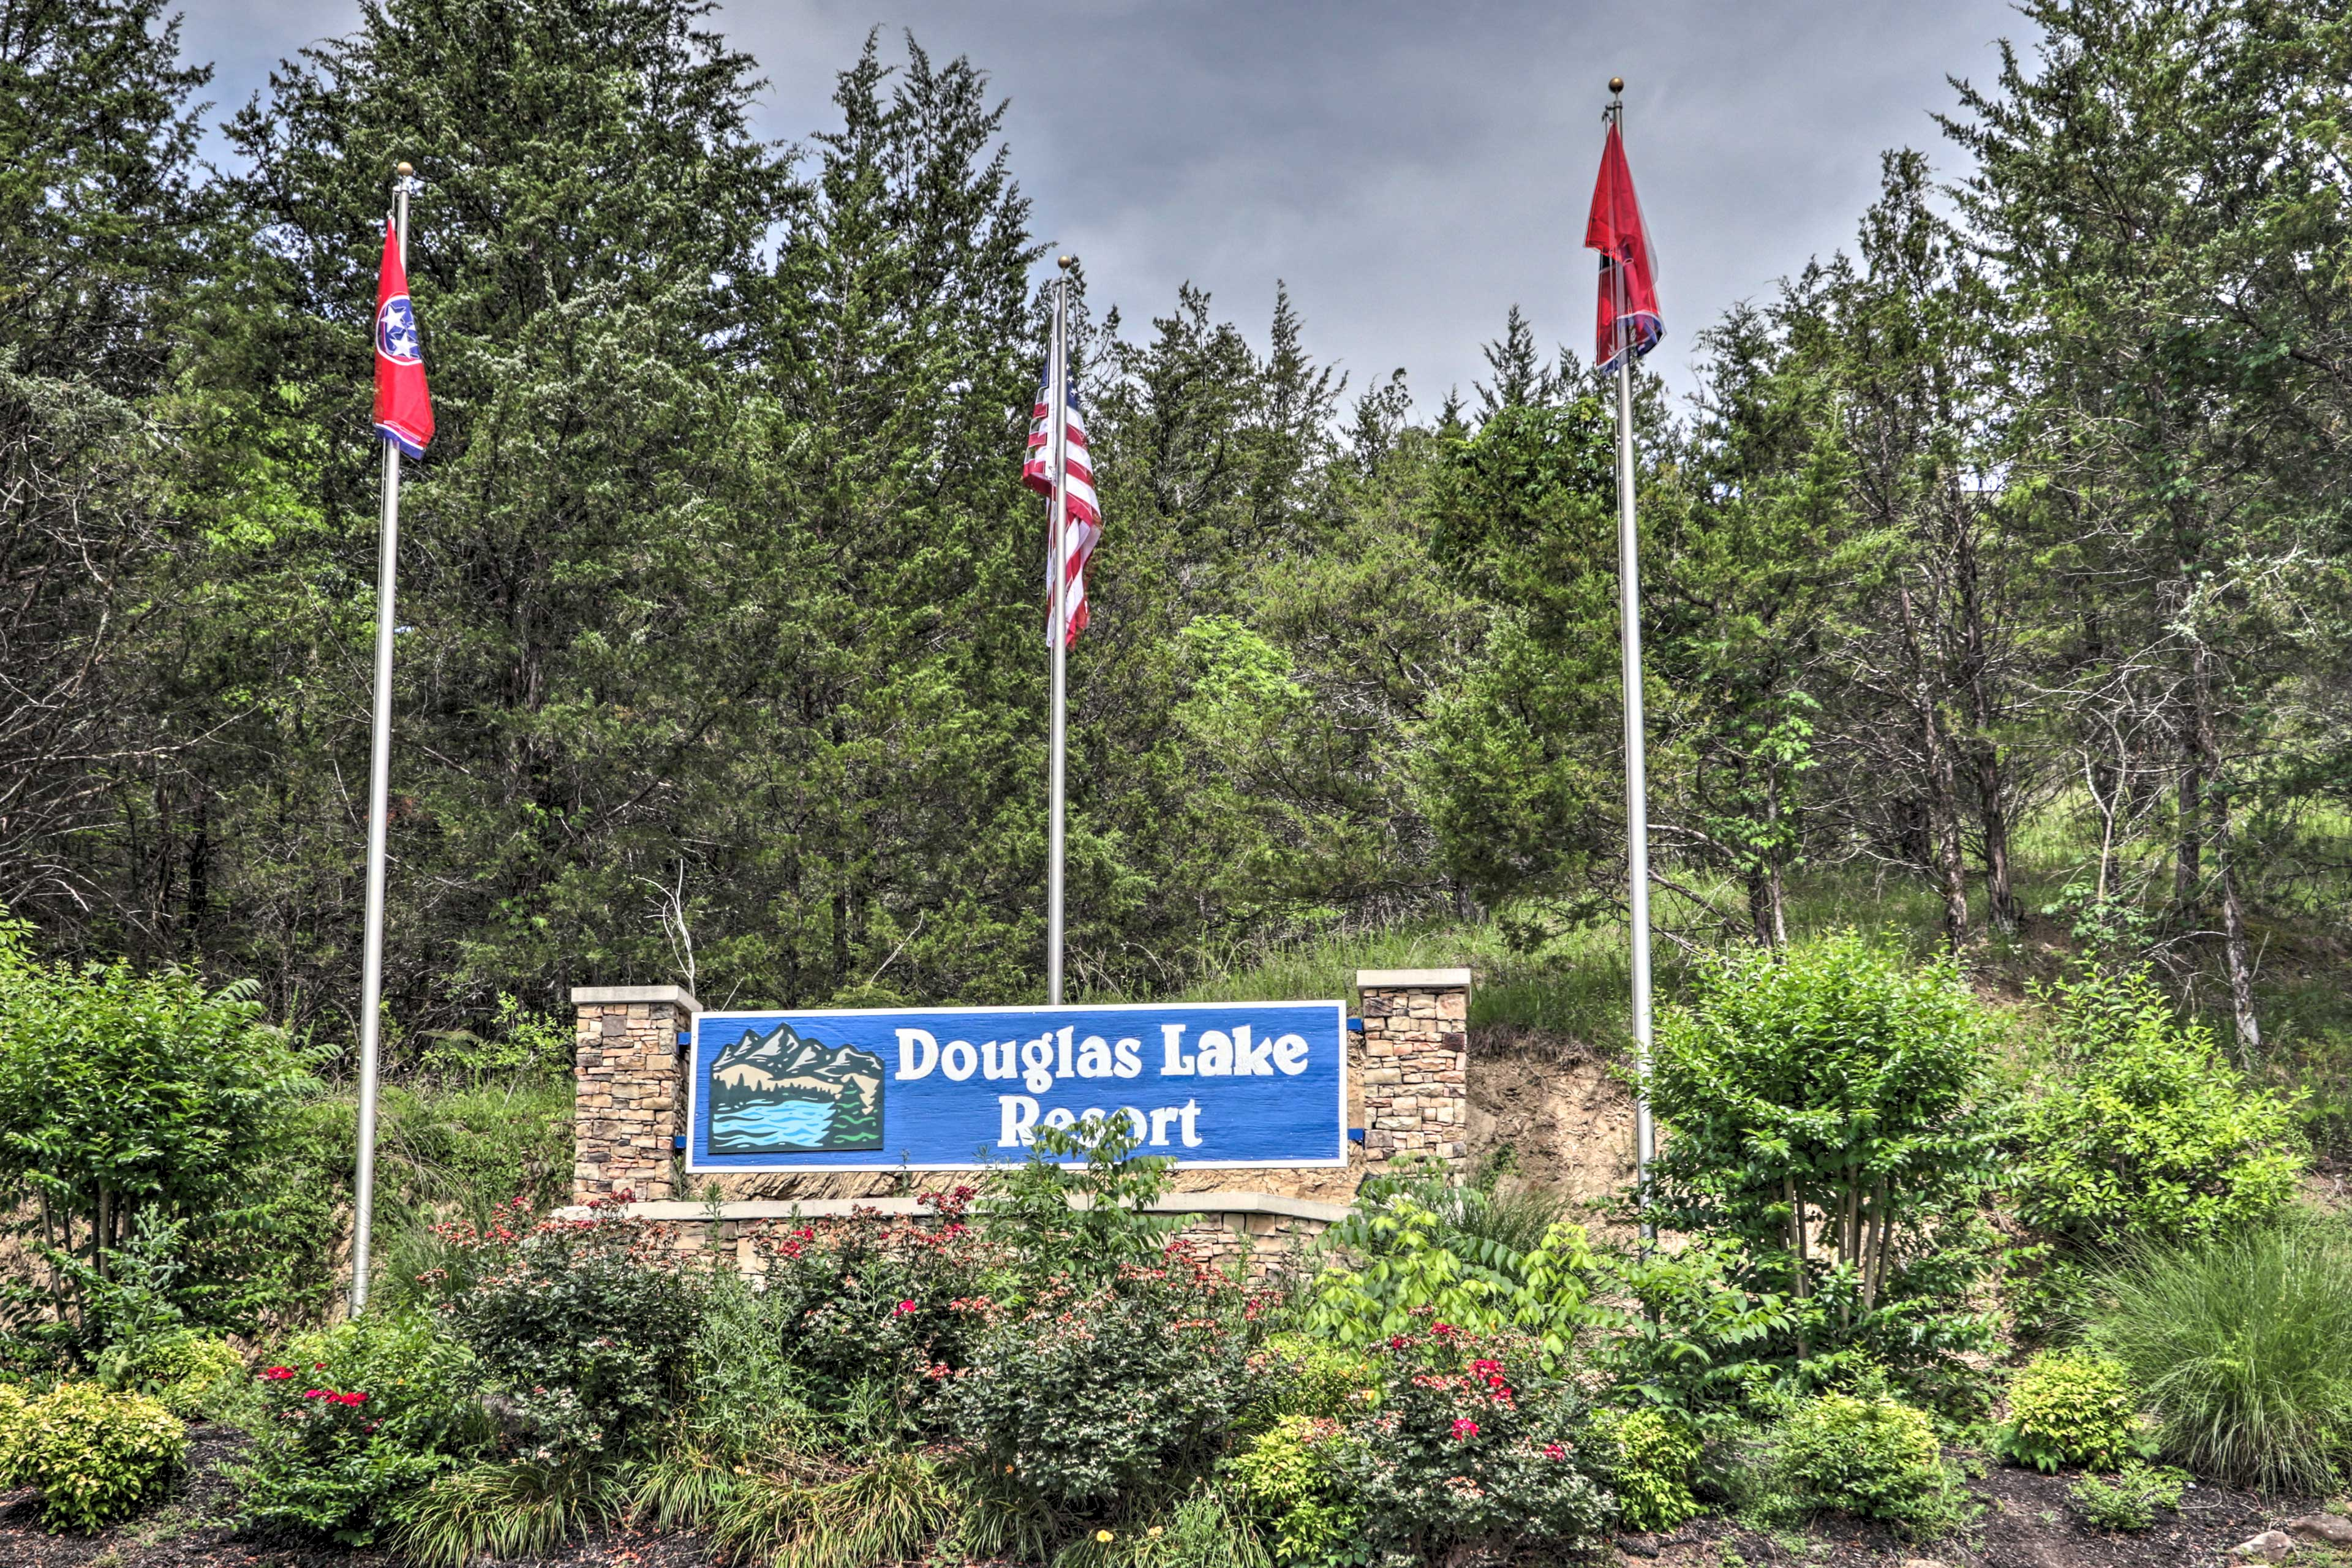 Douglas Lake Resort is ideal for your next summer vacation!